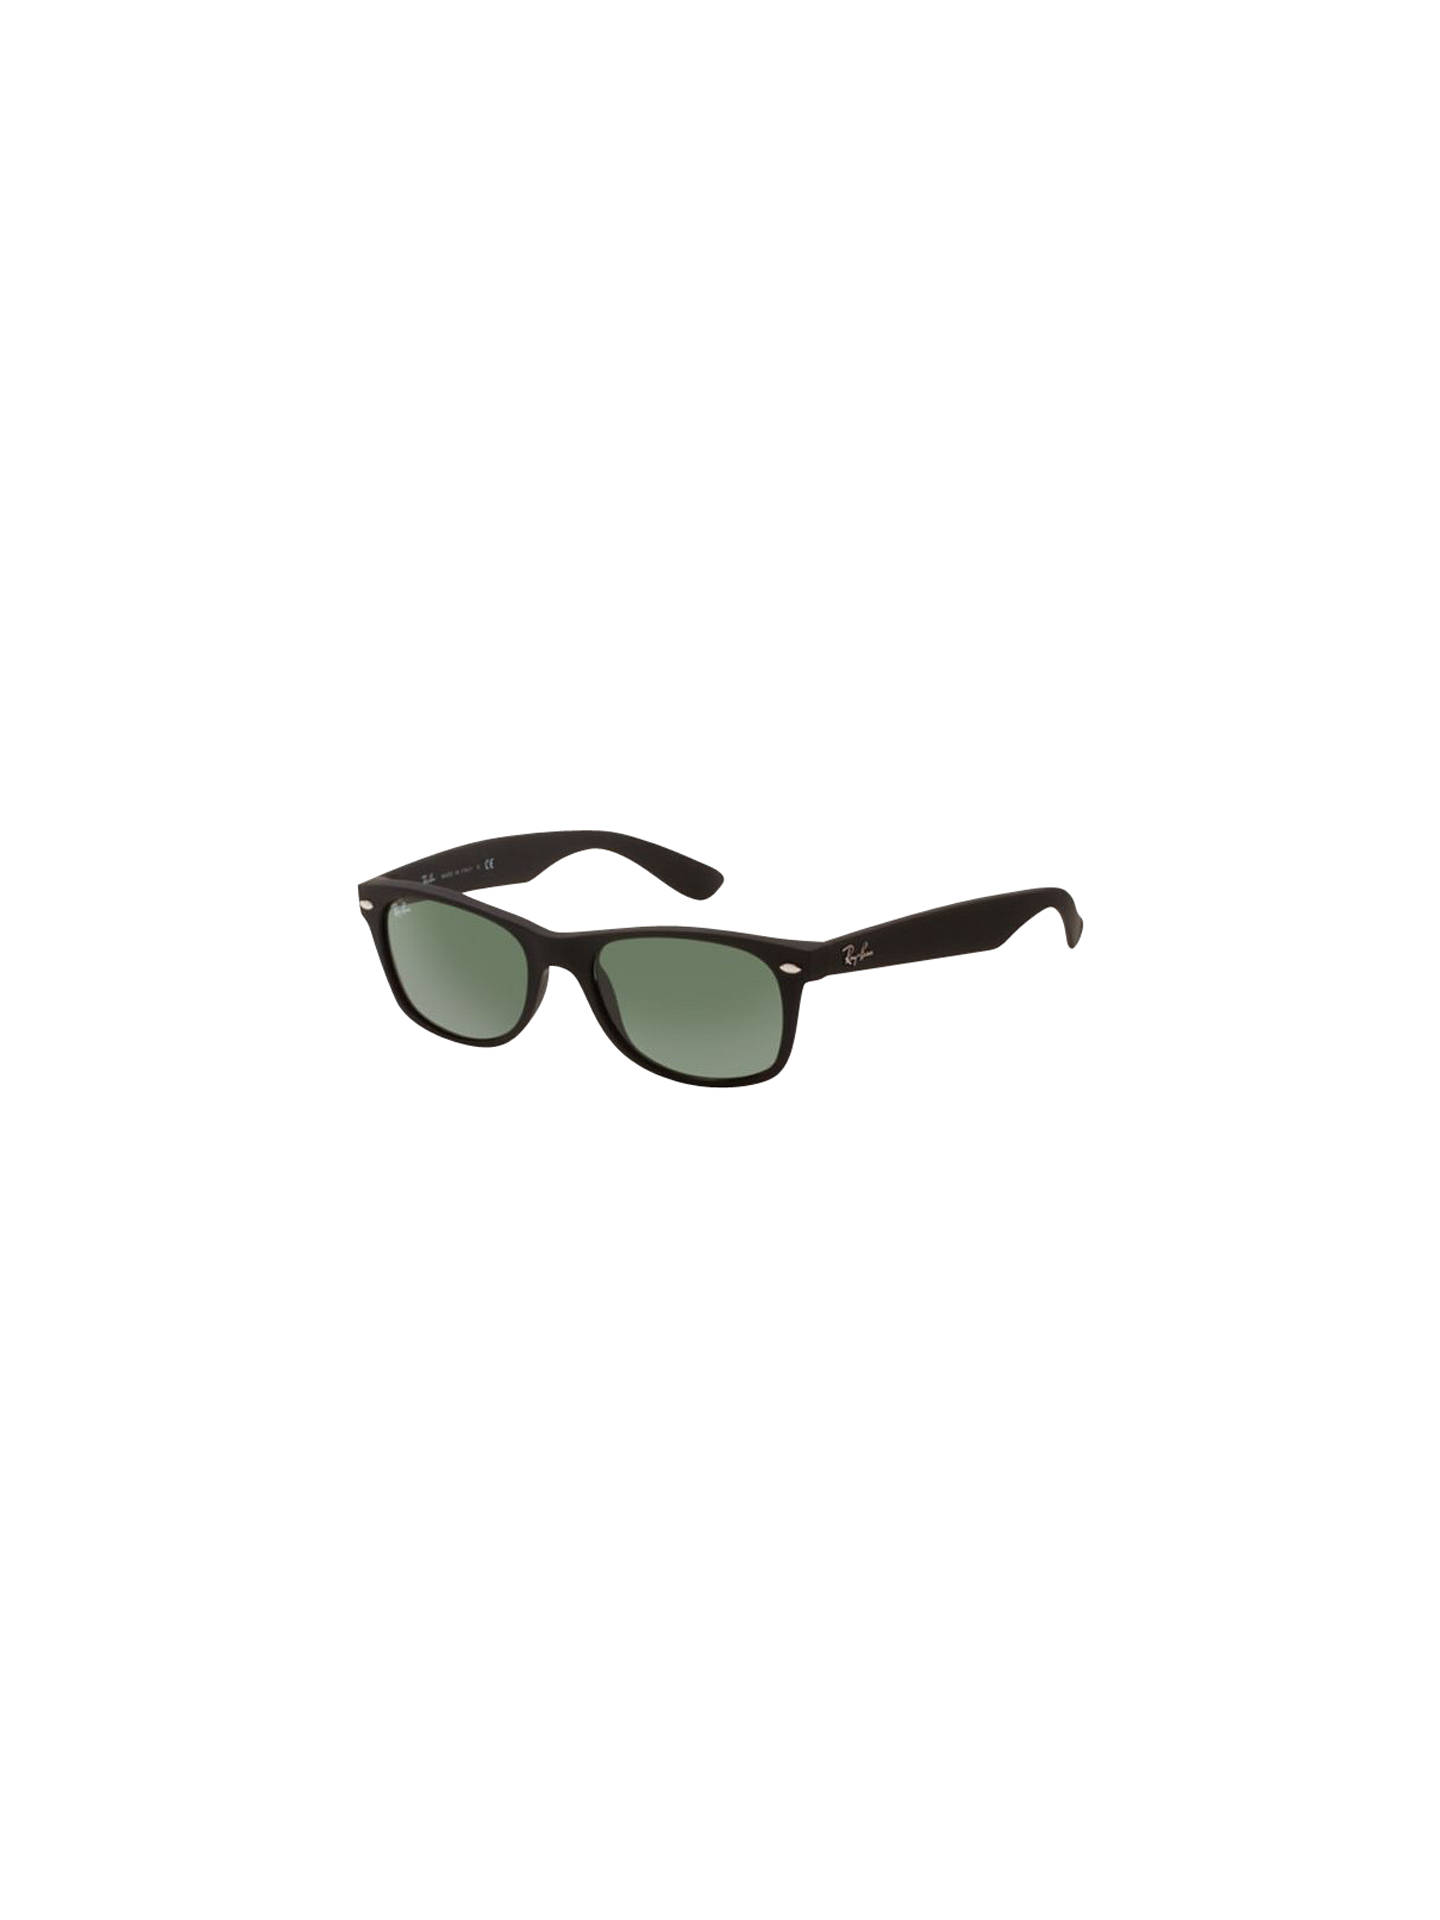 5f728220f8 BuyRay-Ban RB2132 New Wayfarer Sunglasses